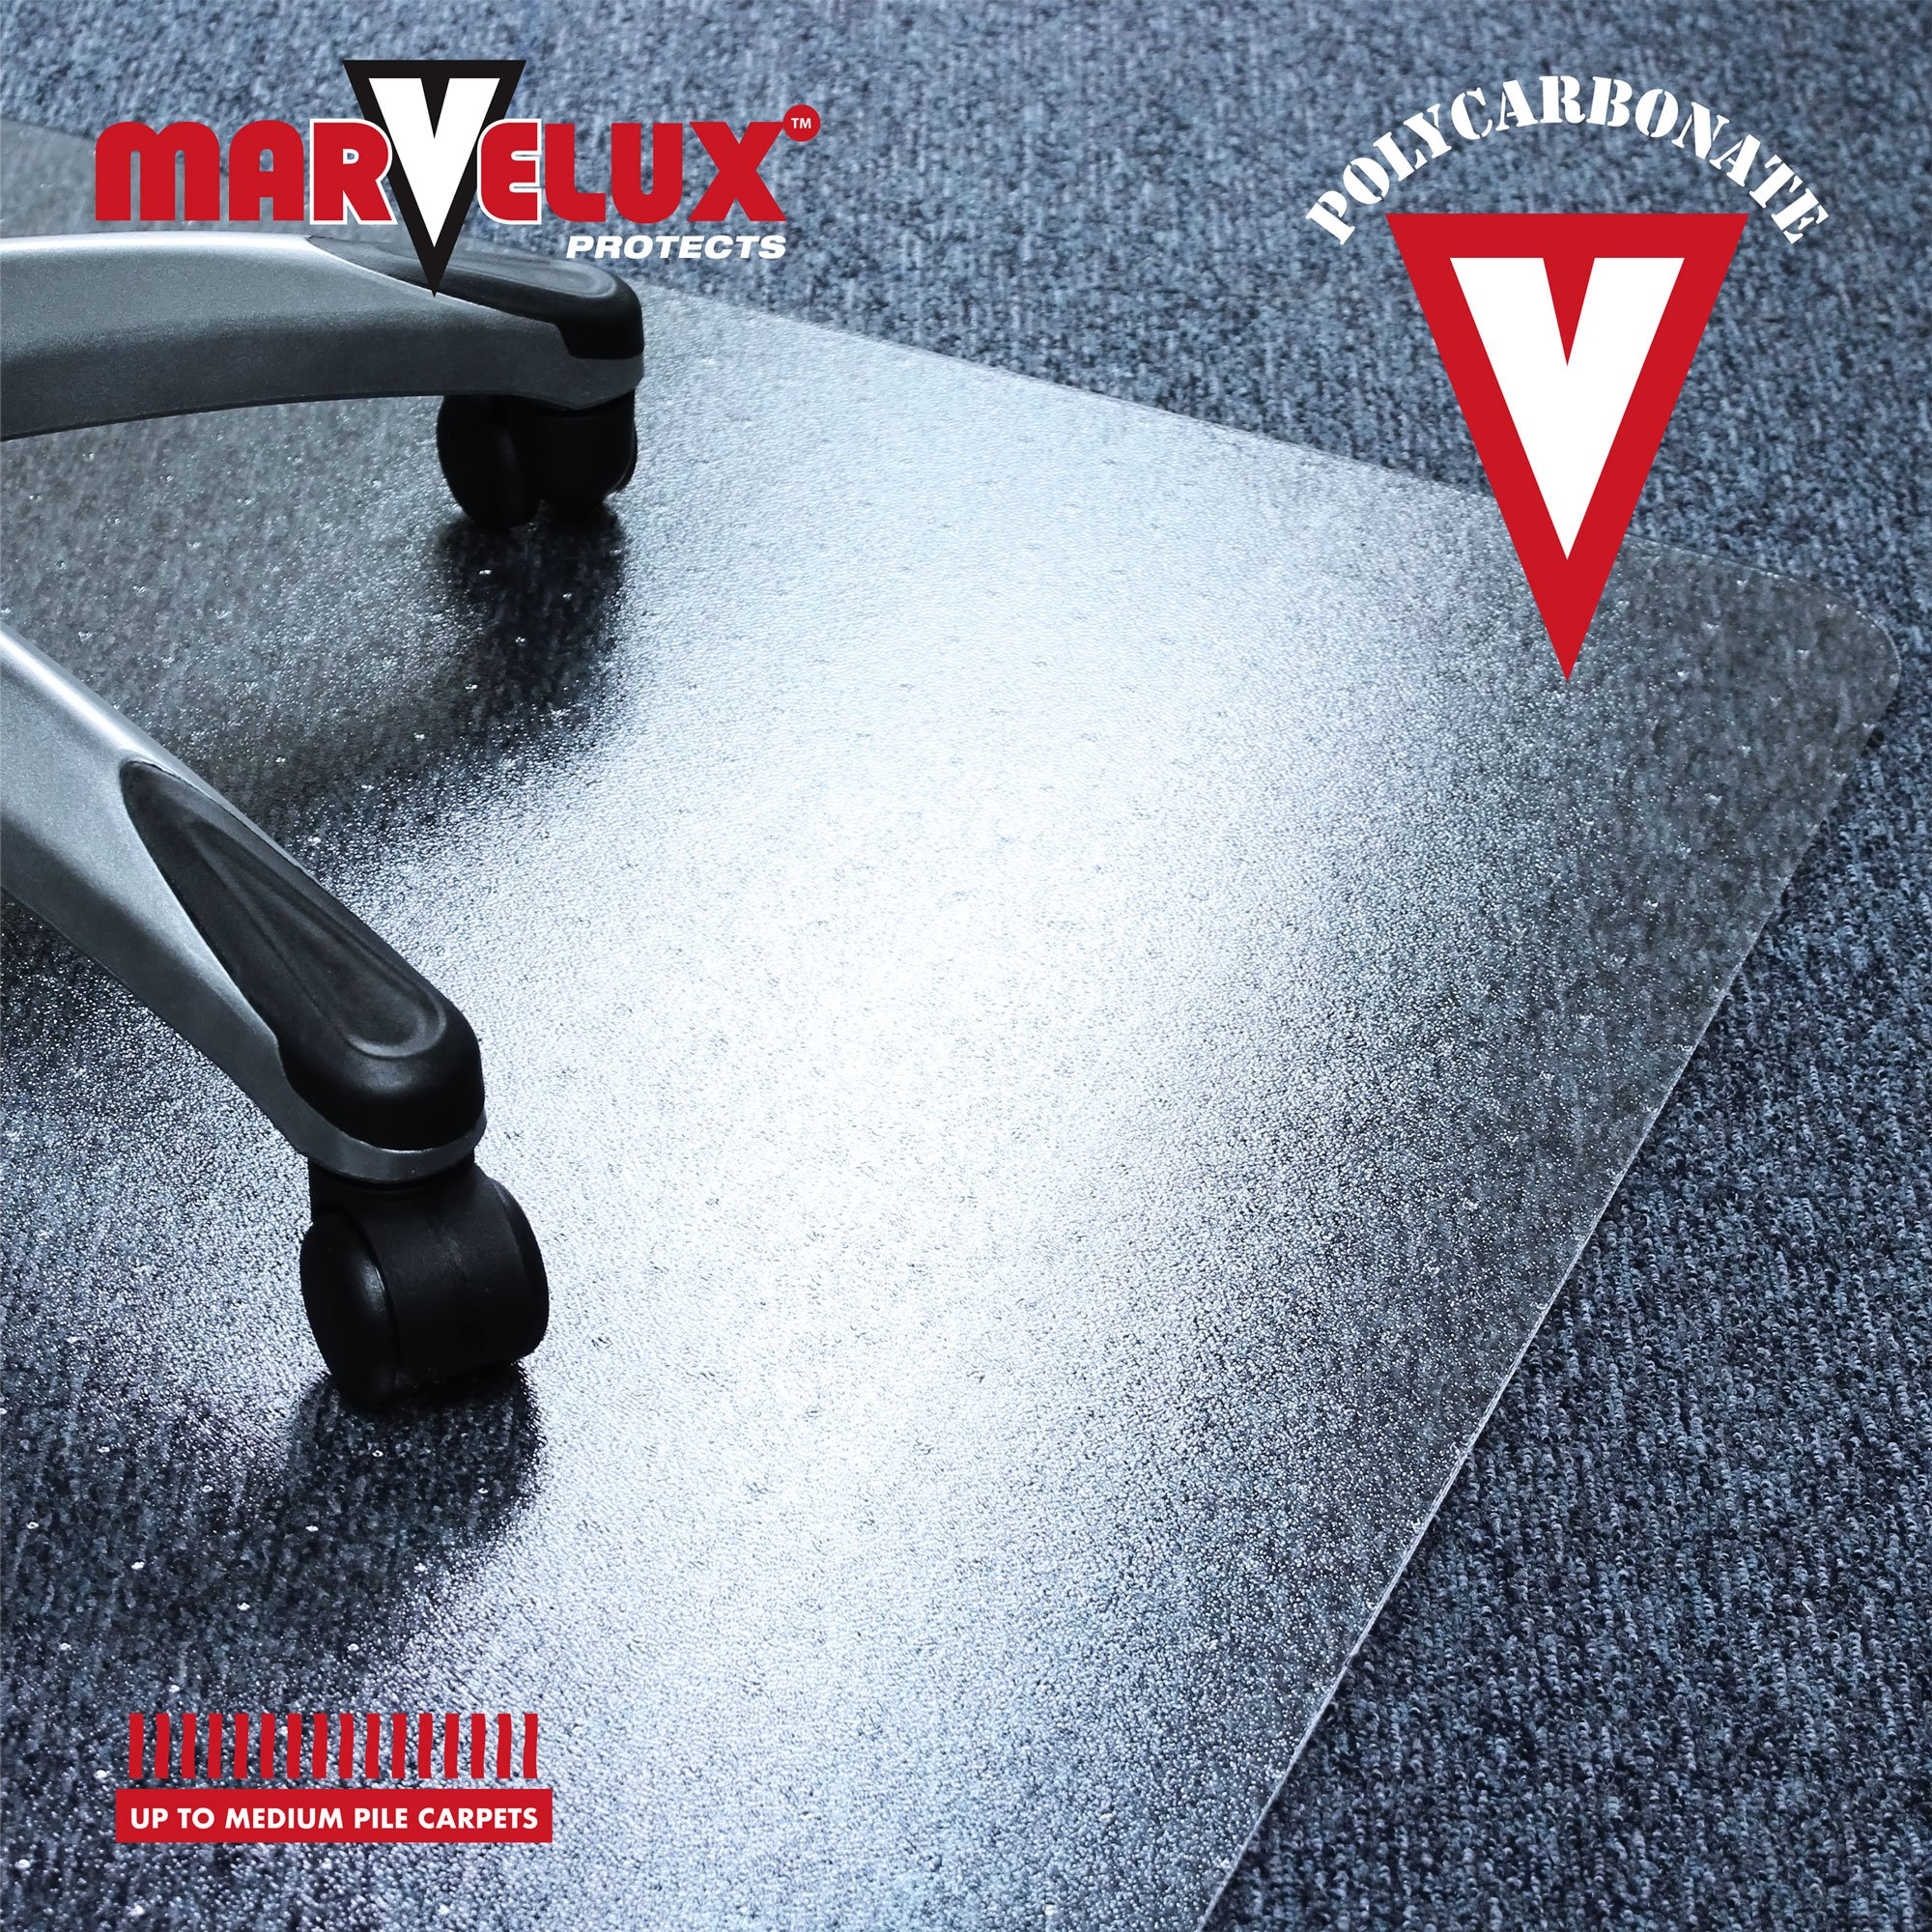 Marvelux 36'' x 48'' Heavy Duty Polycarbonate (PC) Lipped Chair Mat for Low, Standard and Medium Pile Carpets | Transparent Carpet Protector | Pack of 2 by Marvelux (Image #6)